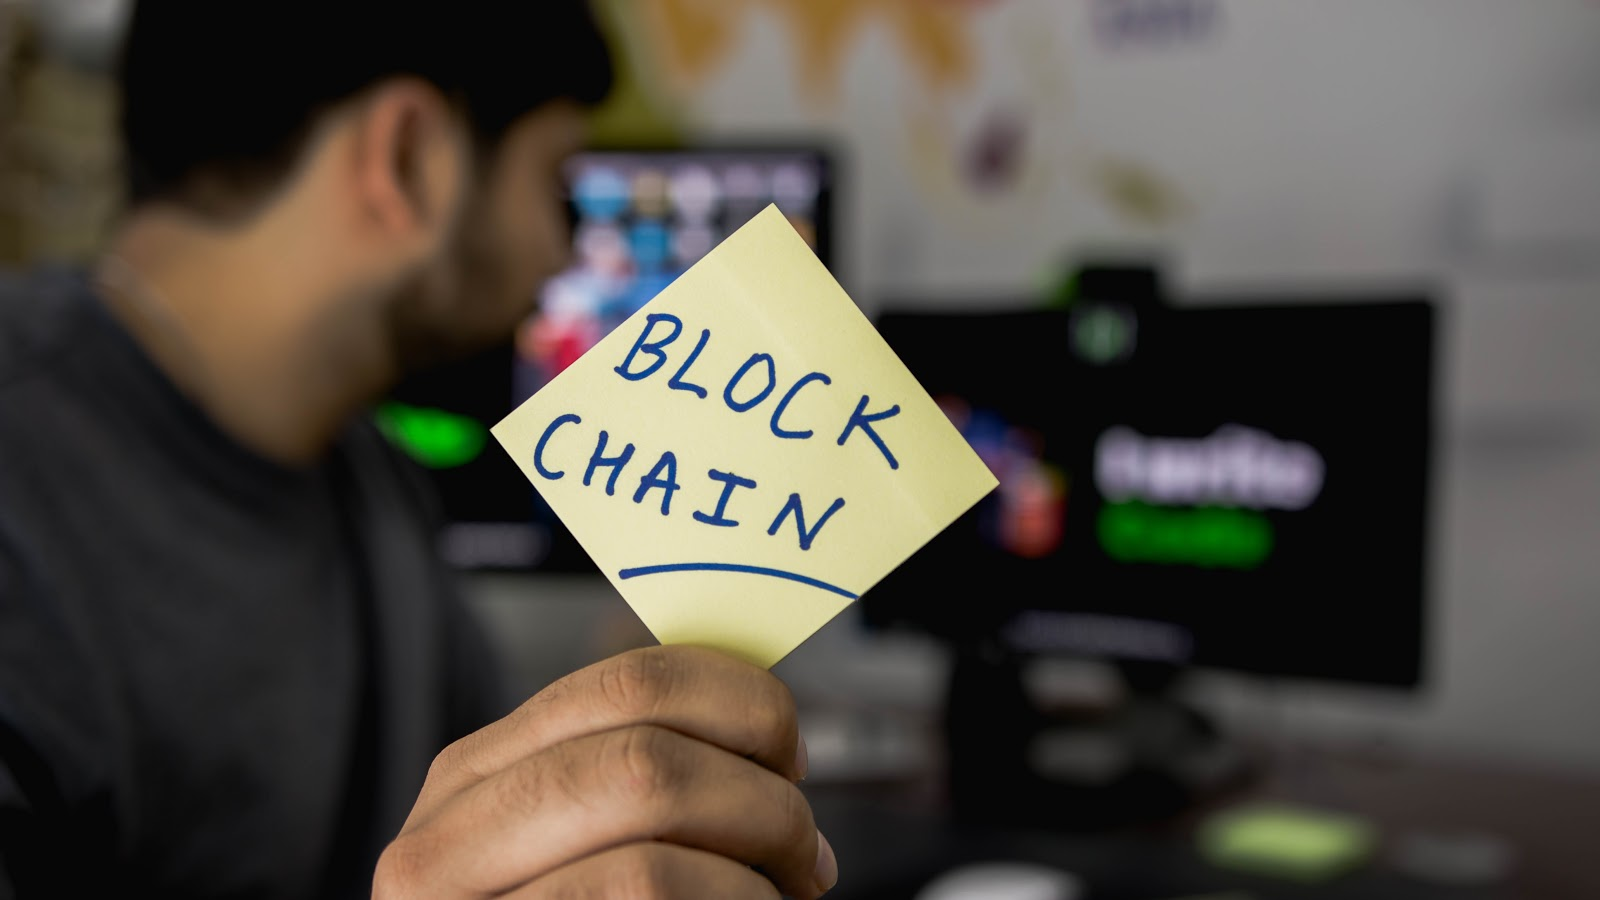 main holding blockchain post-it